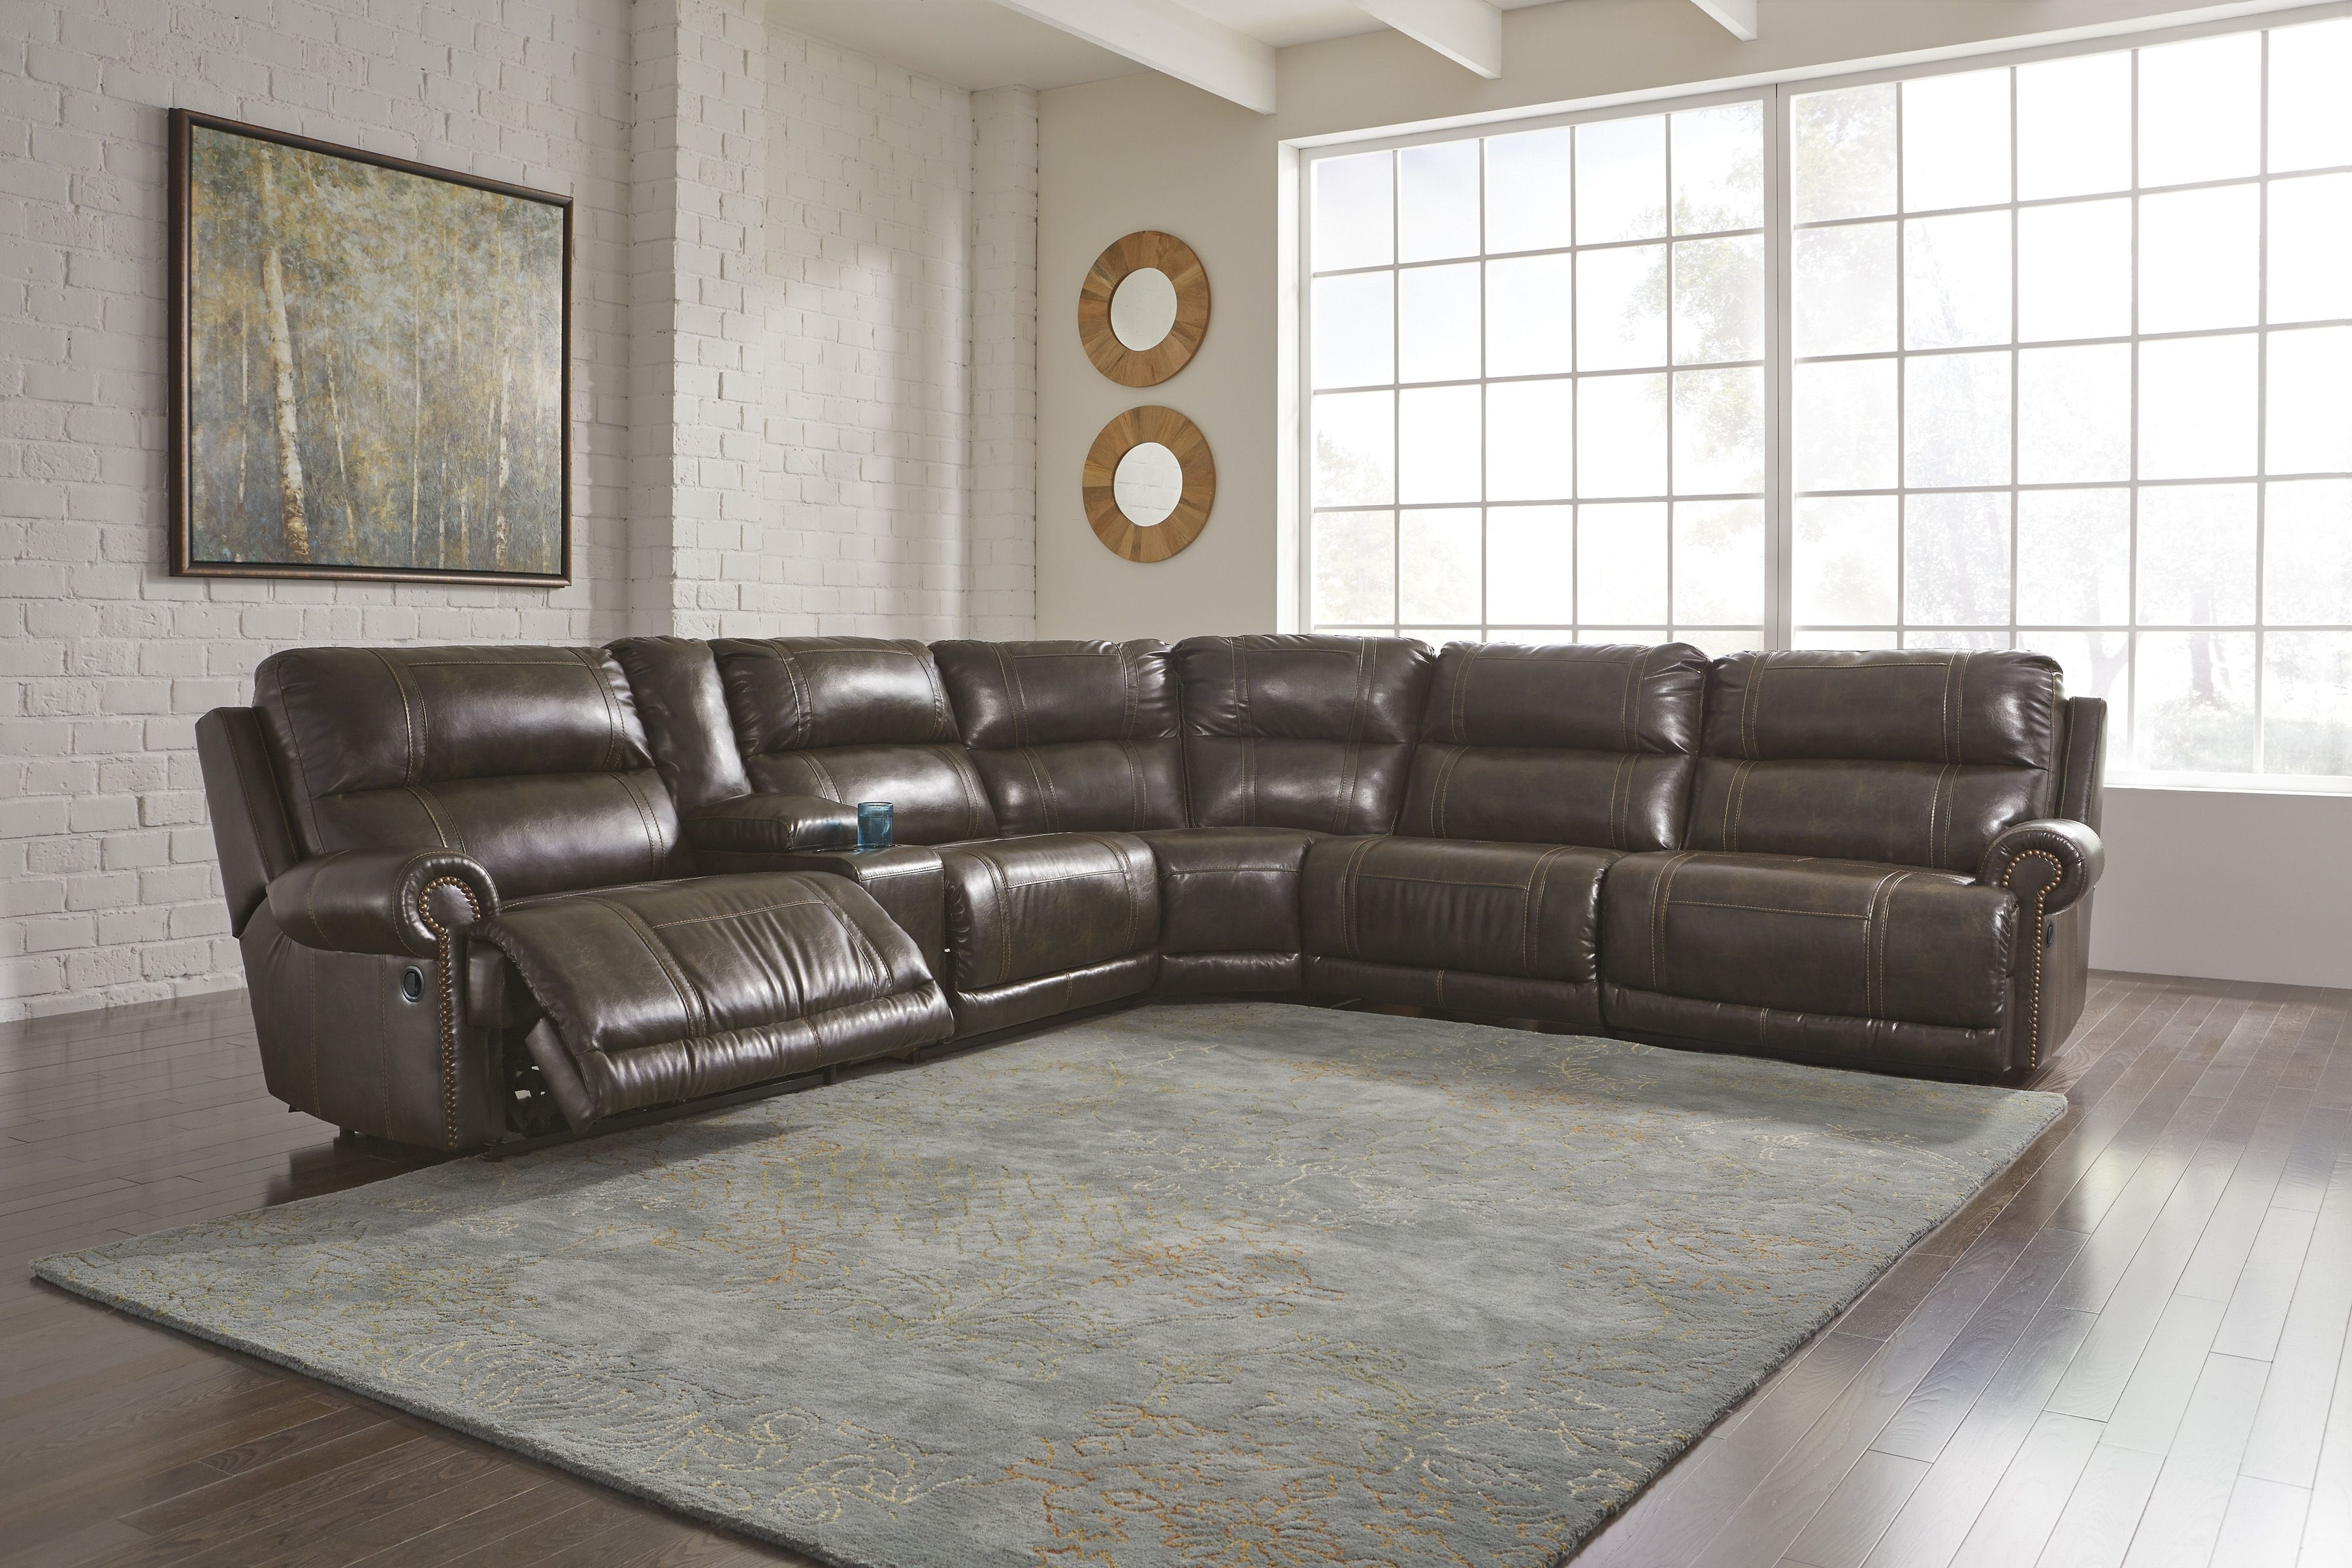 Dak - Antique 7 Piece Sectional | Living Rooms To Love | Pinterest in Blaine 4 Piece Sectionals (Image 10 of 30)